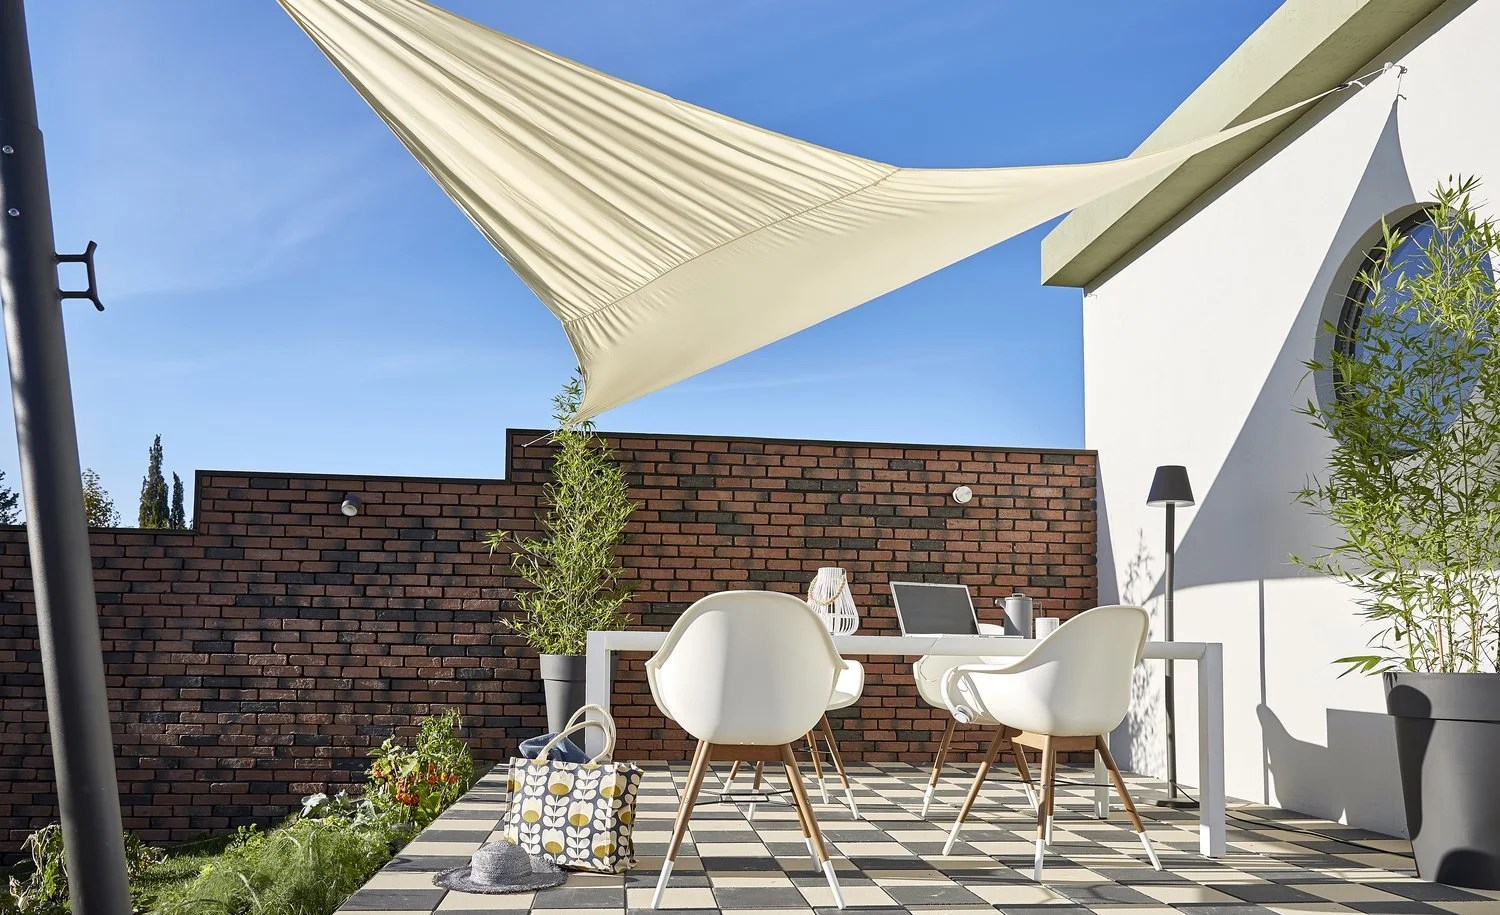 Voile D Ombrage Pour Terrasse Voile D Ombrage Pour Terrasse Trendy Voiles Dombrage